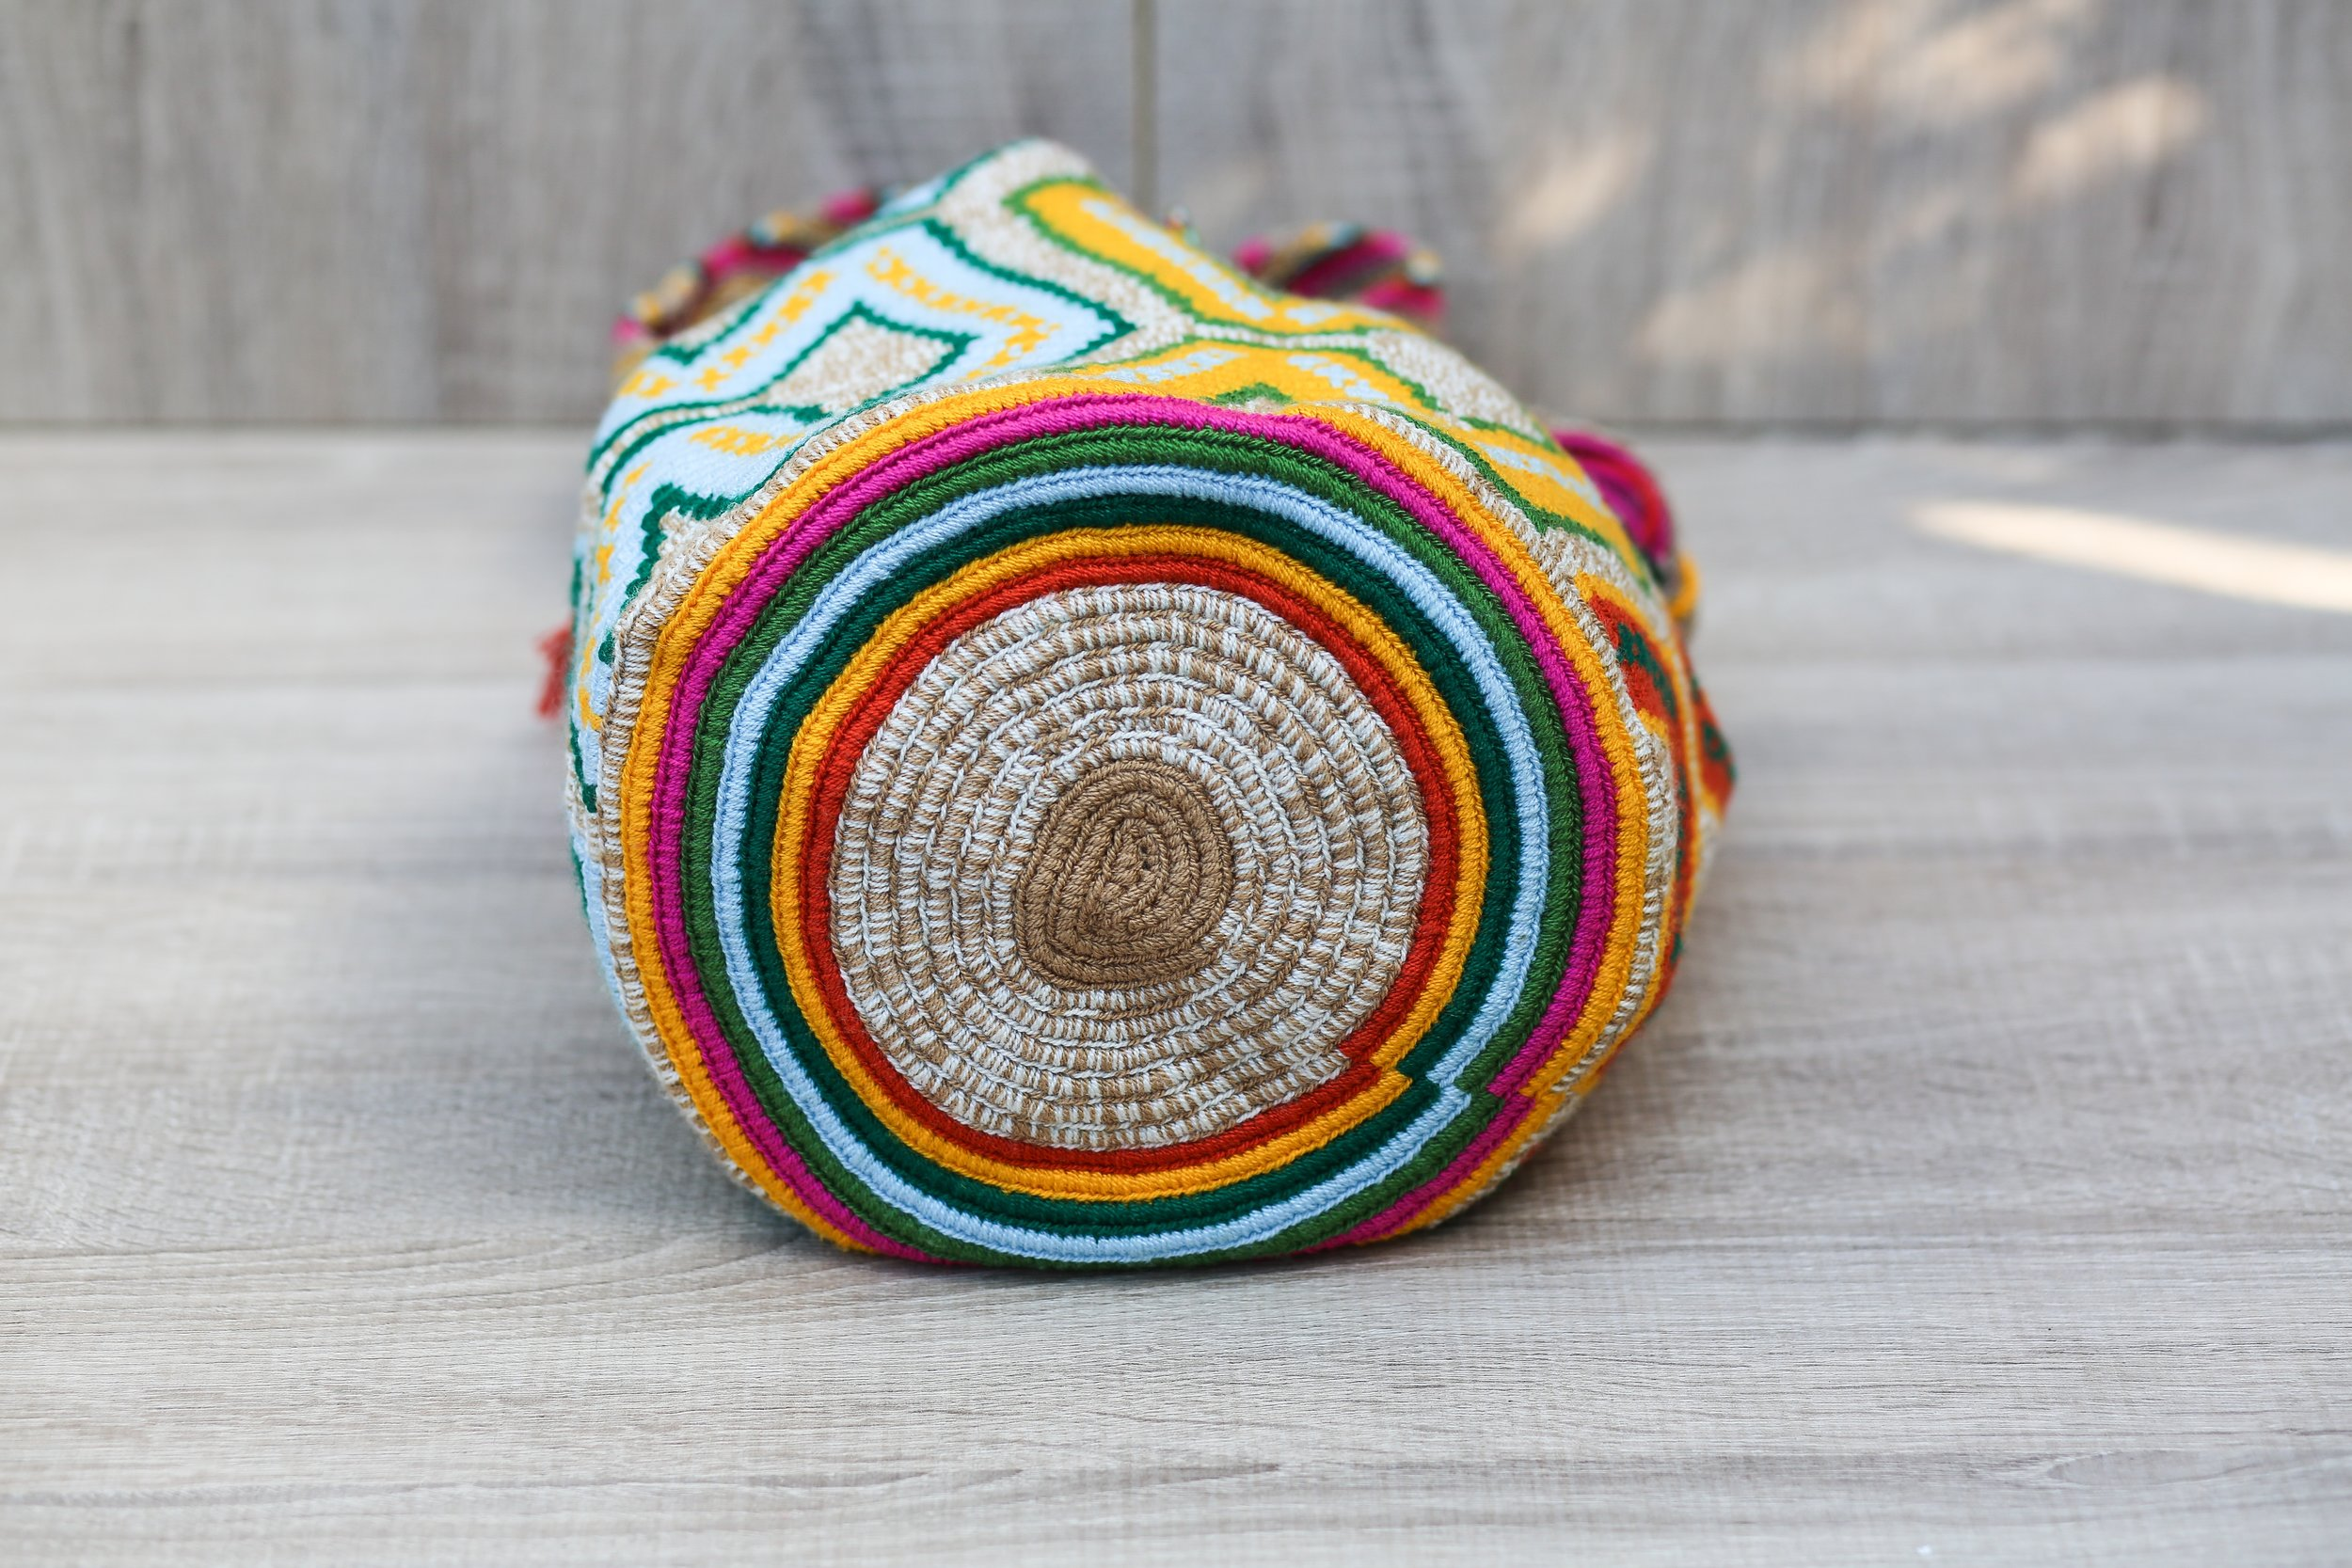 3d15d3db3 Waju Waju Bags - Shop- Hand made in Colombia by the wayuu tribe ...